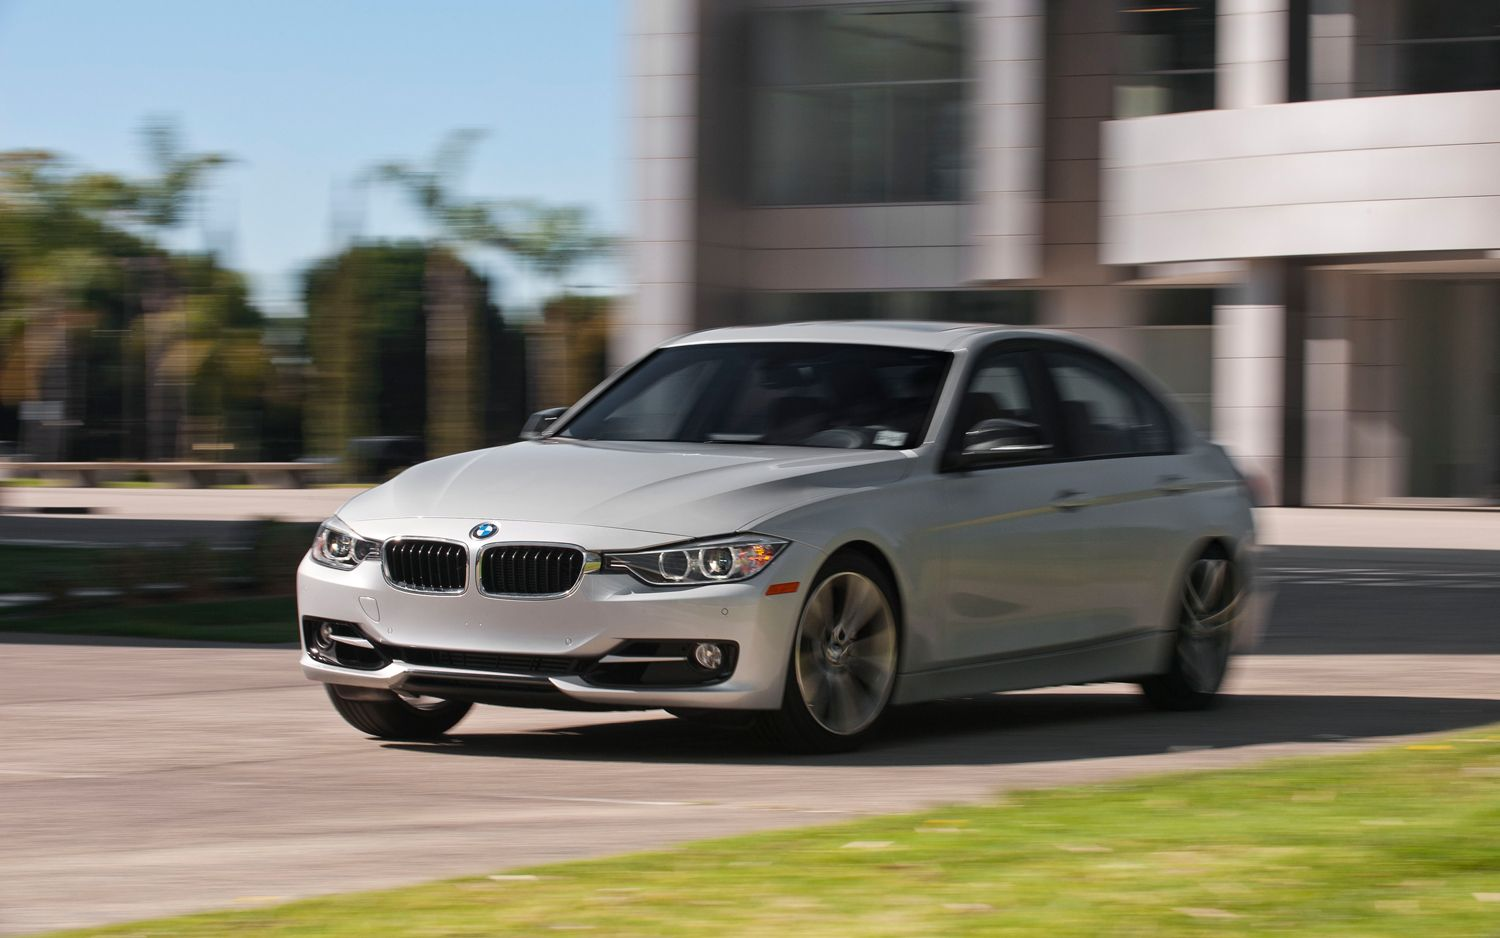 Total Victory: The BMW 328i is Better Than the BMW 335i